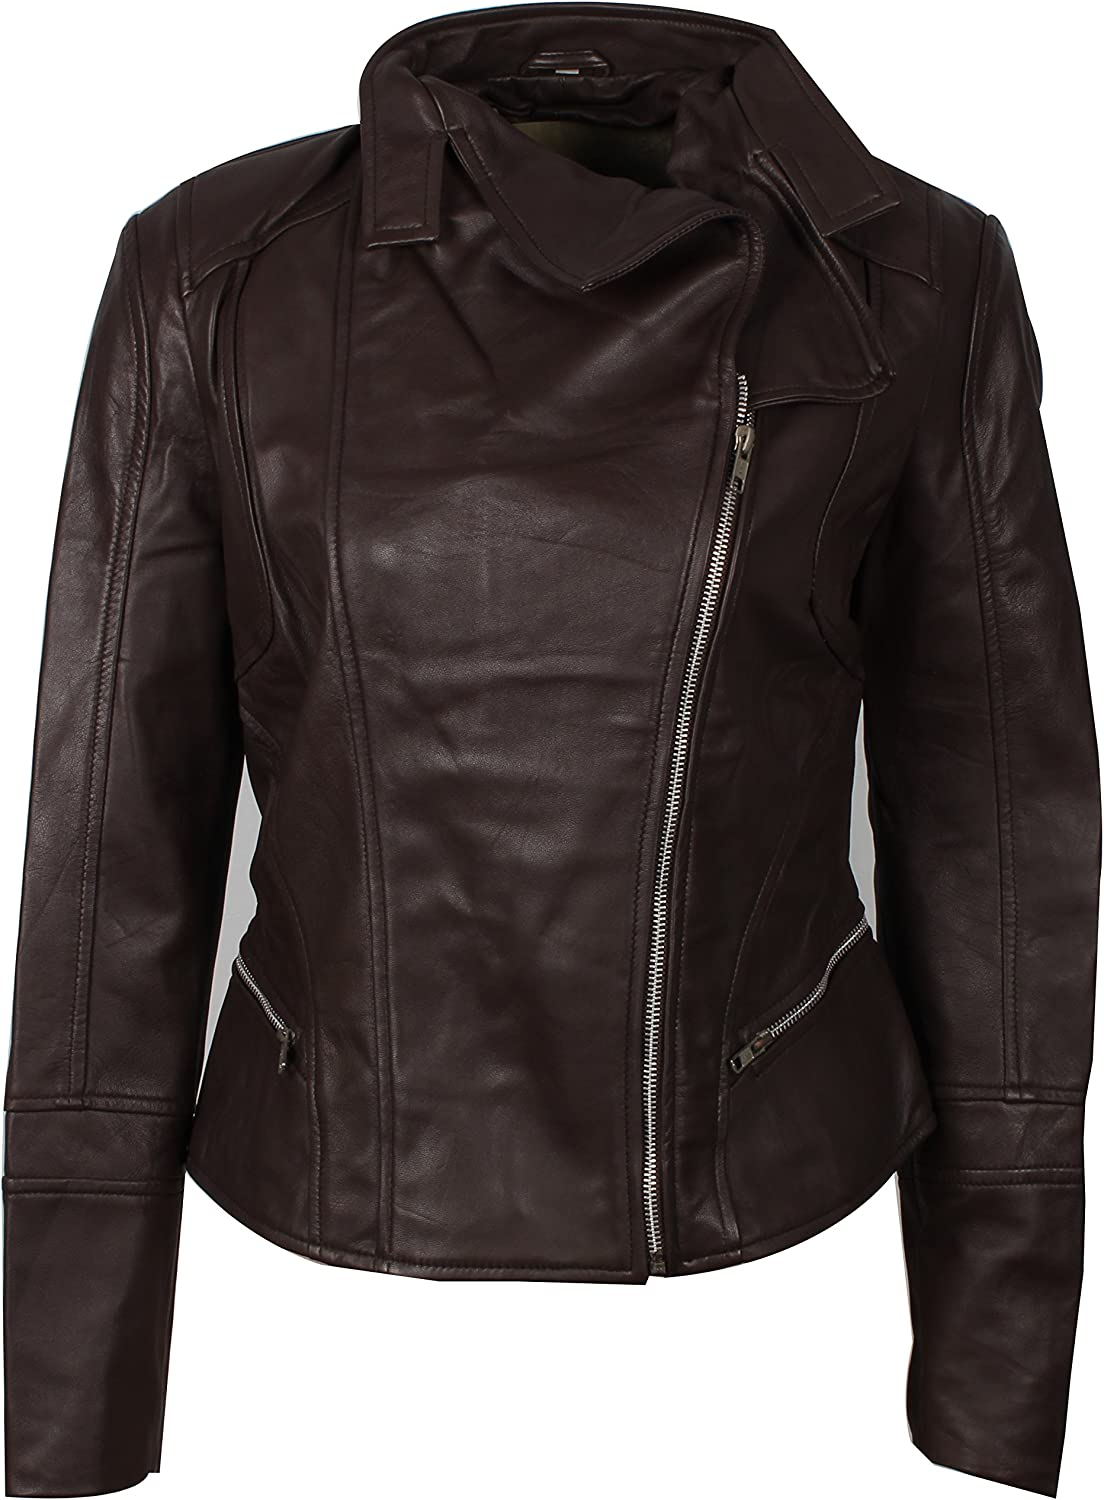 New Women's Stylish Short Body Slim Fit Biker Lady Leather Jacket.